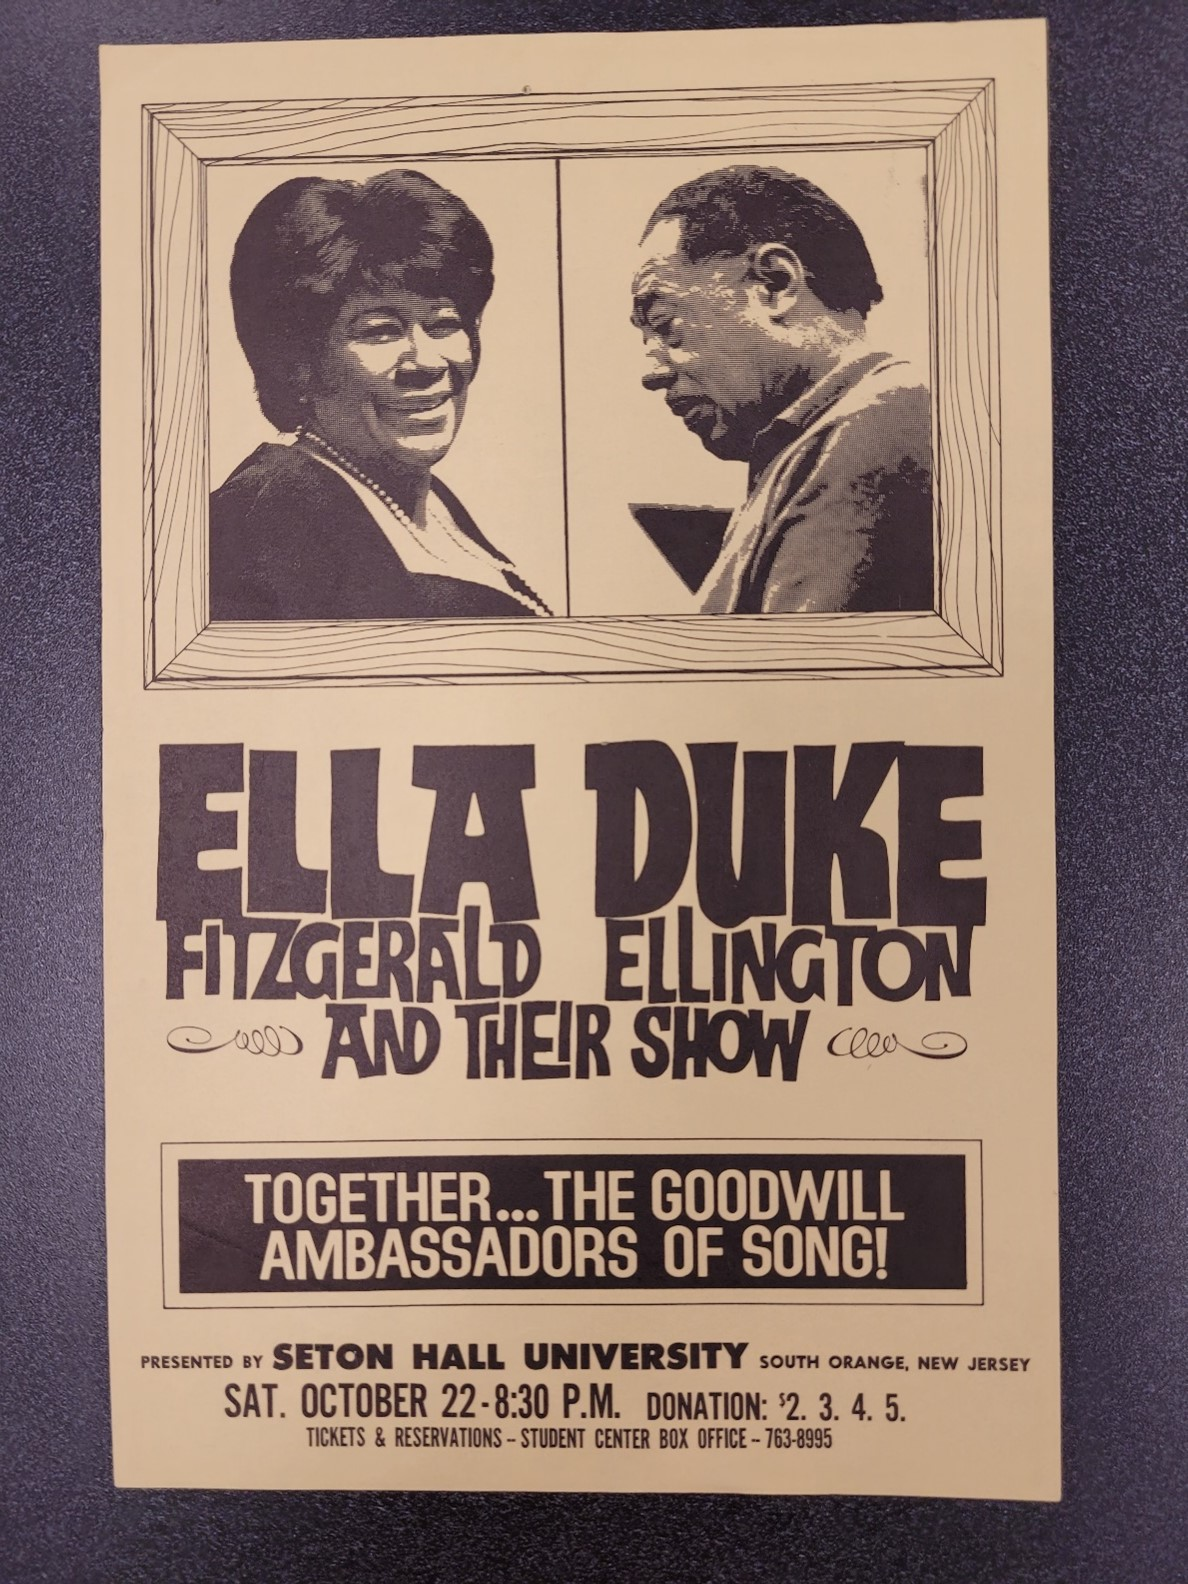 Poster with tan colored paper and brown text advertising a performance by Ella Fitzgerald and Duke Ellington with their images